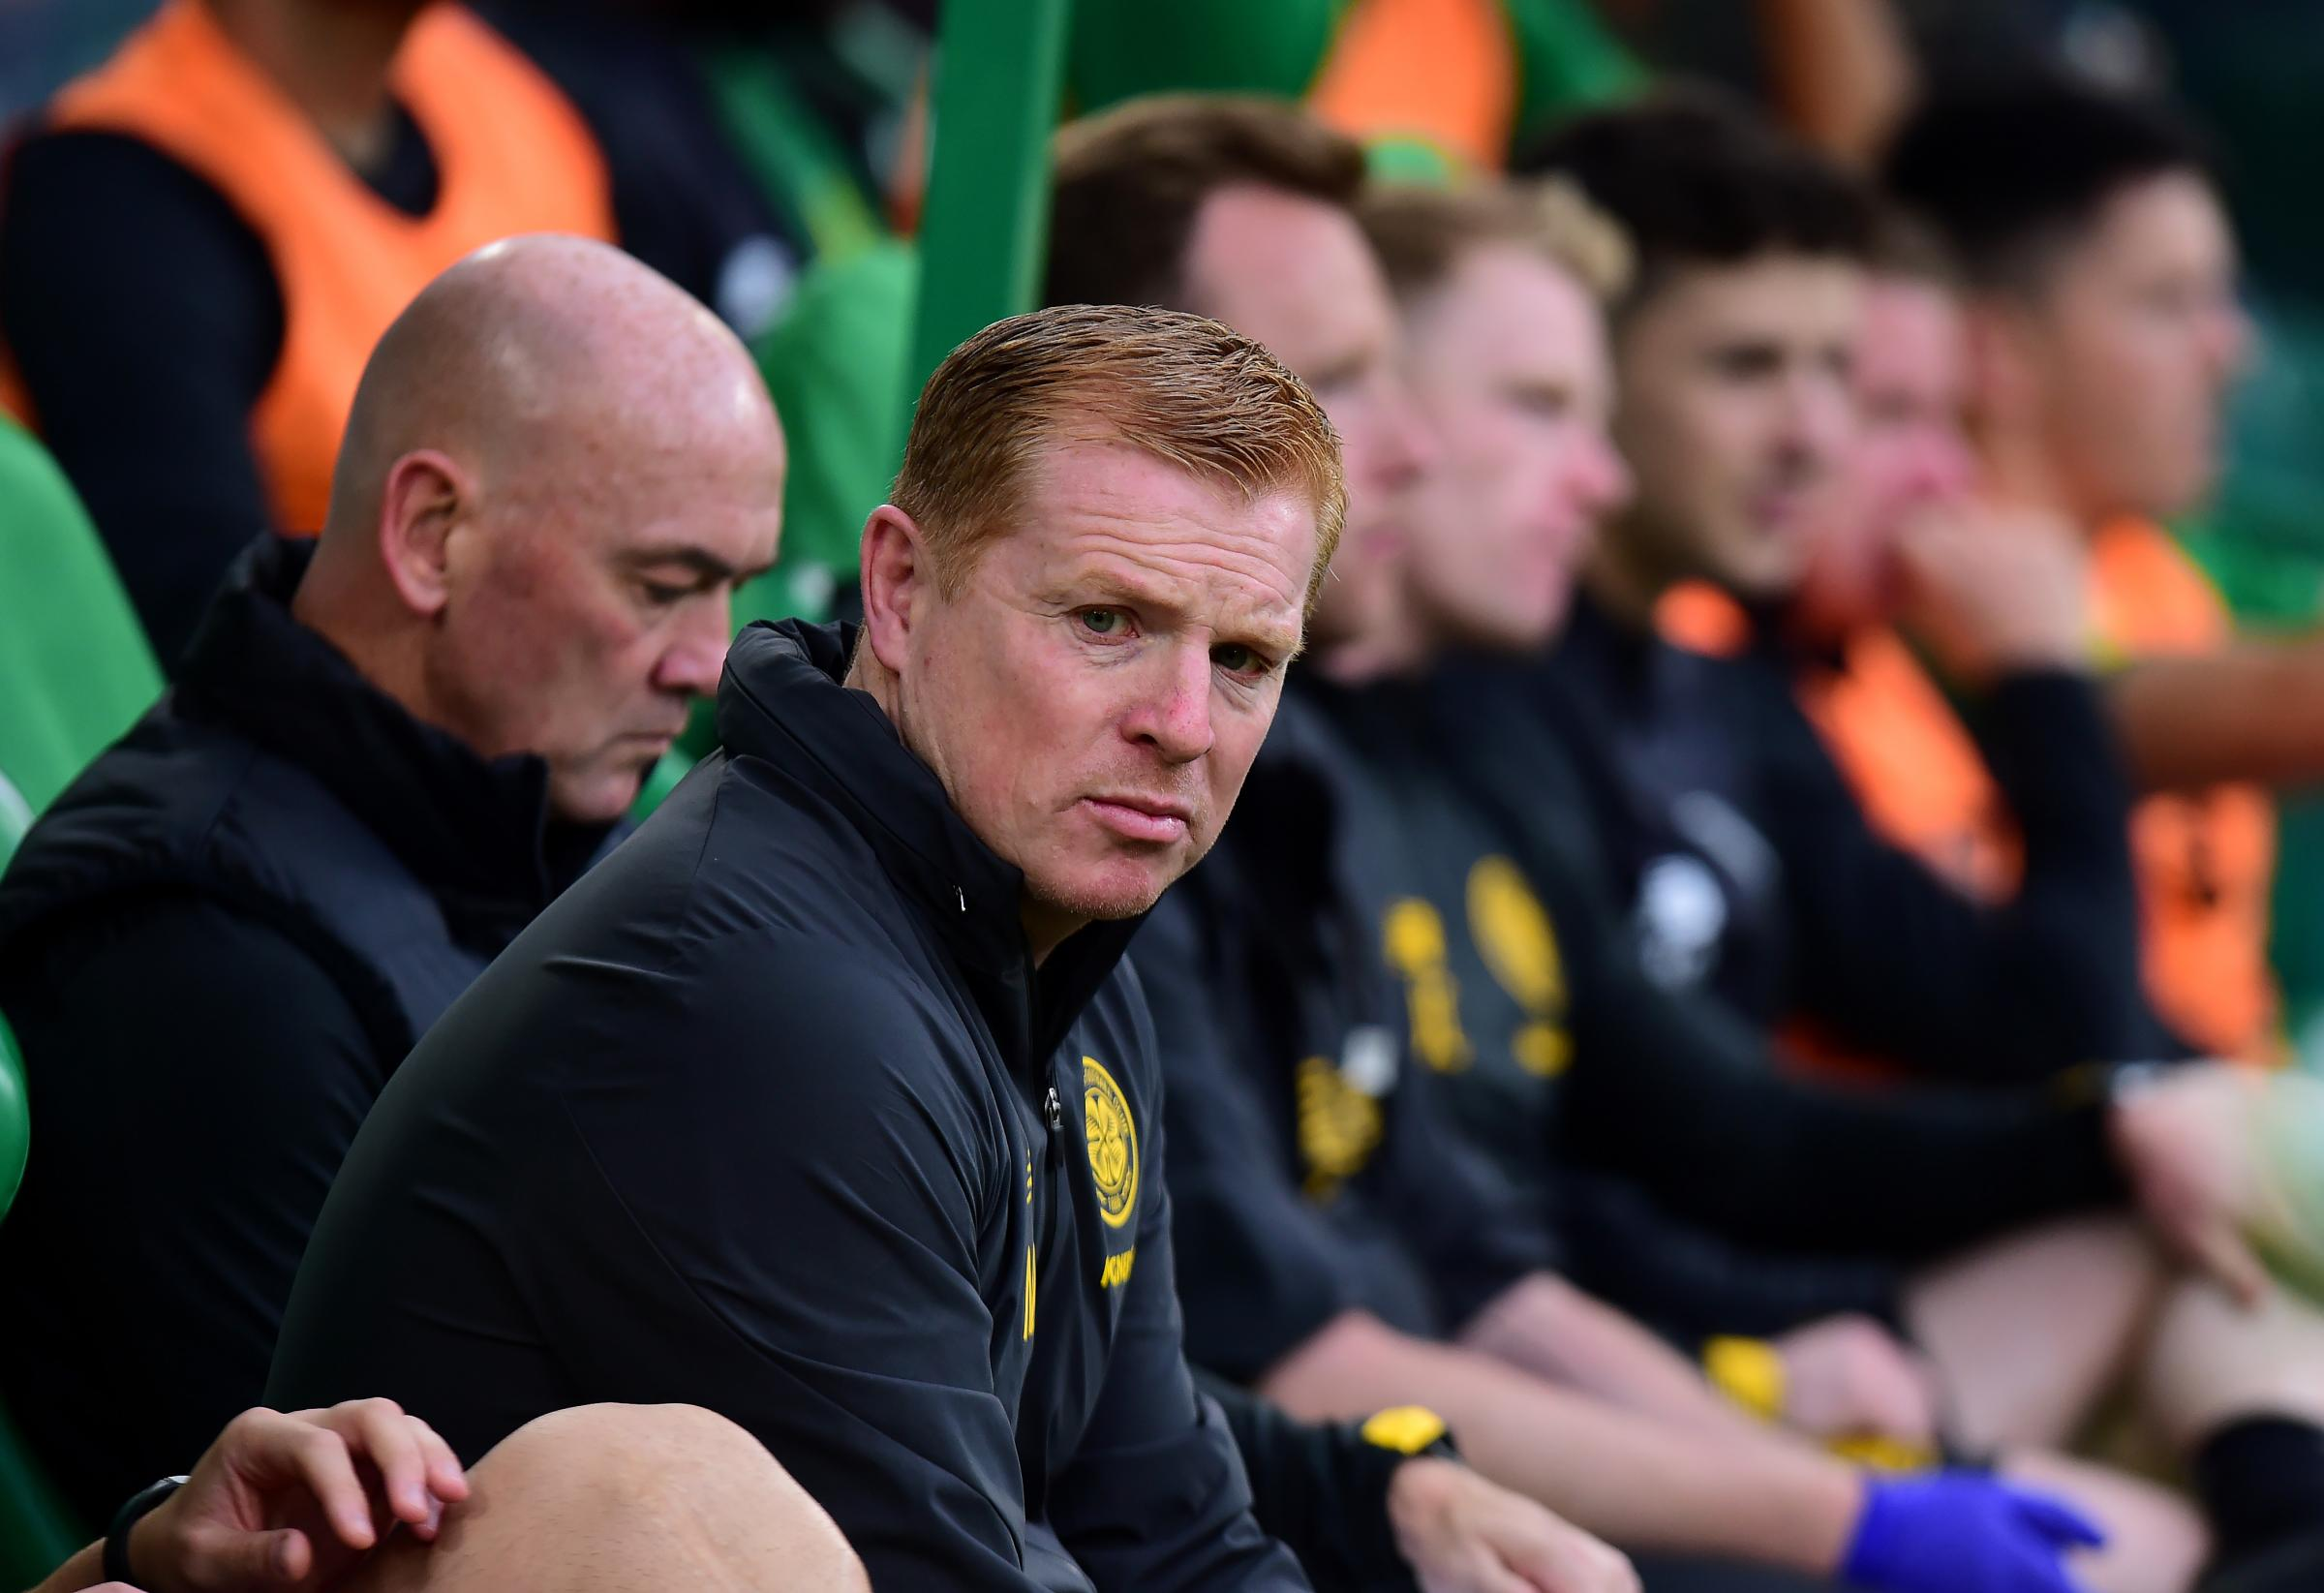 Celtic boss Neil Lennon confirms Ismaila Soro talks and hopes to unveil player this week